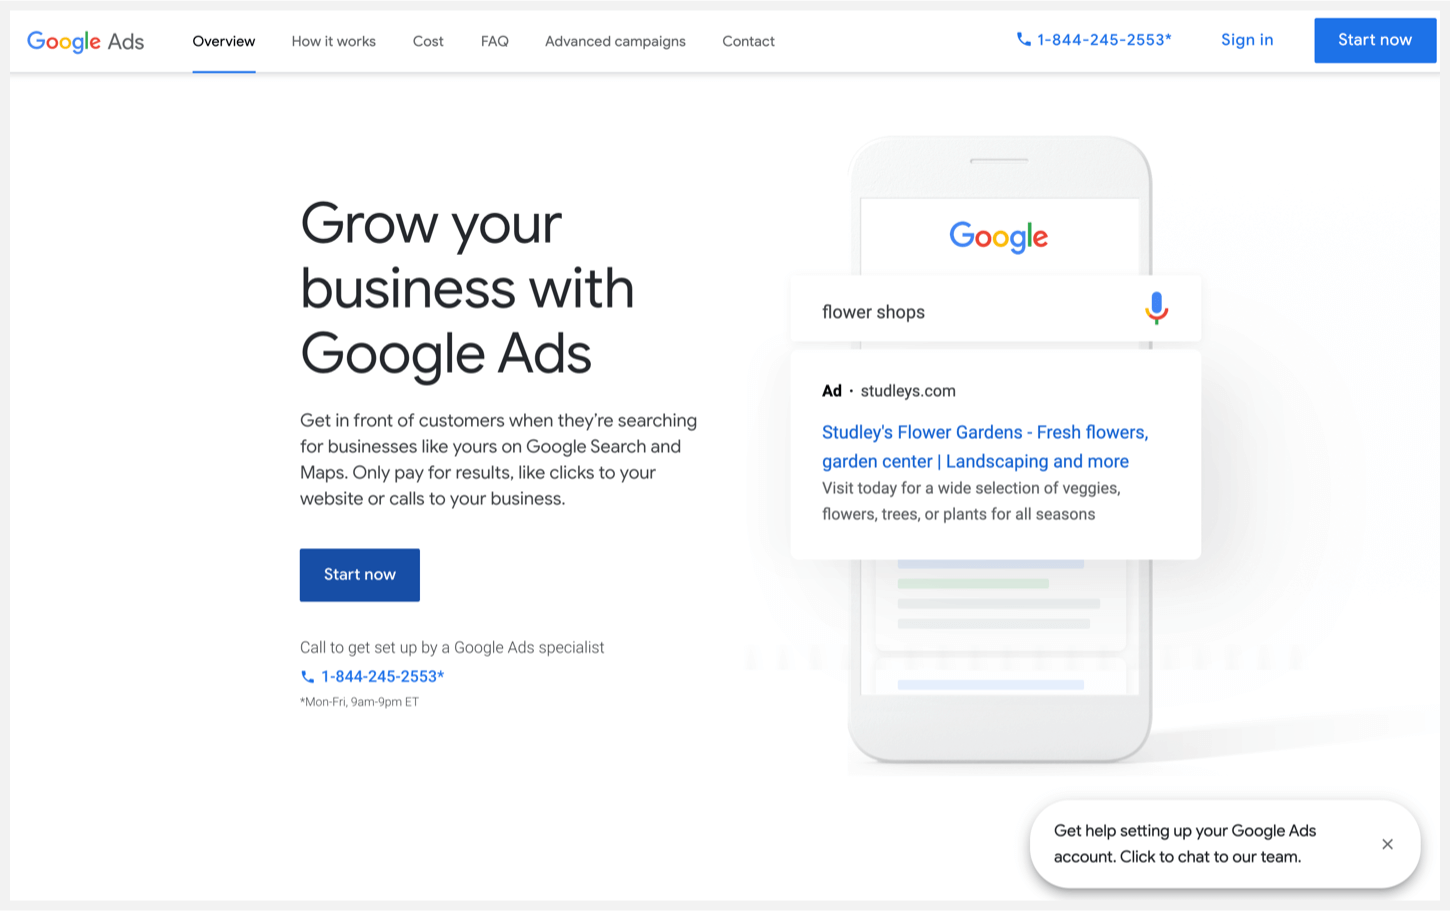 Google Ads homepage with a smartphone an an example ad.